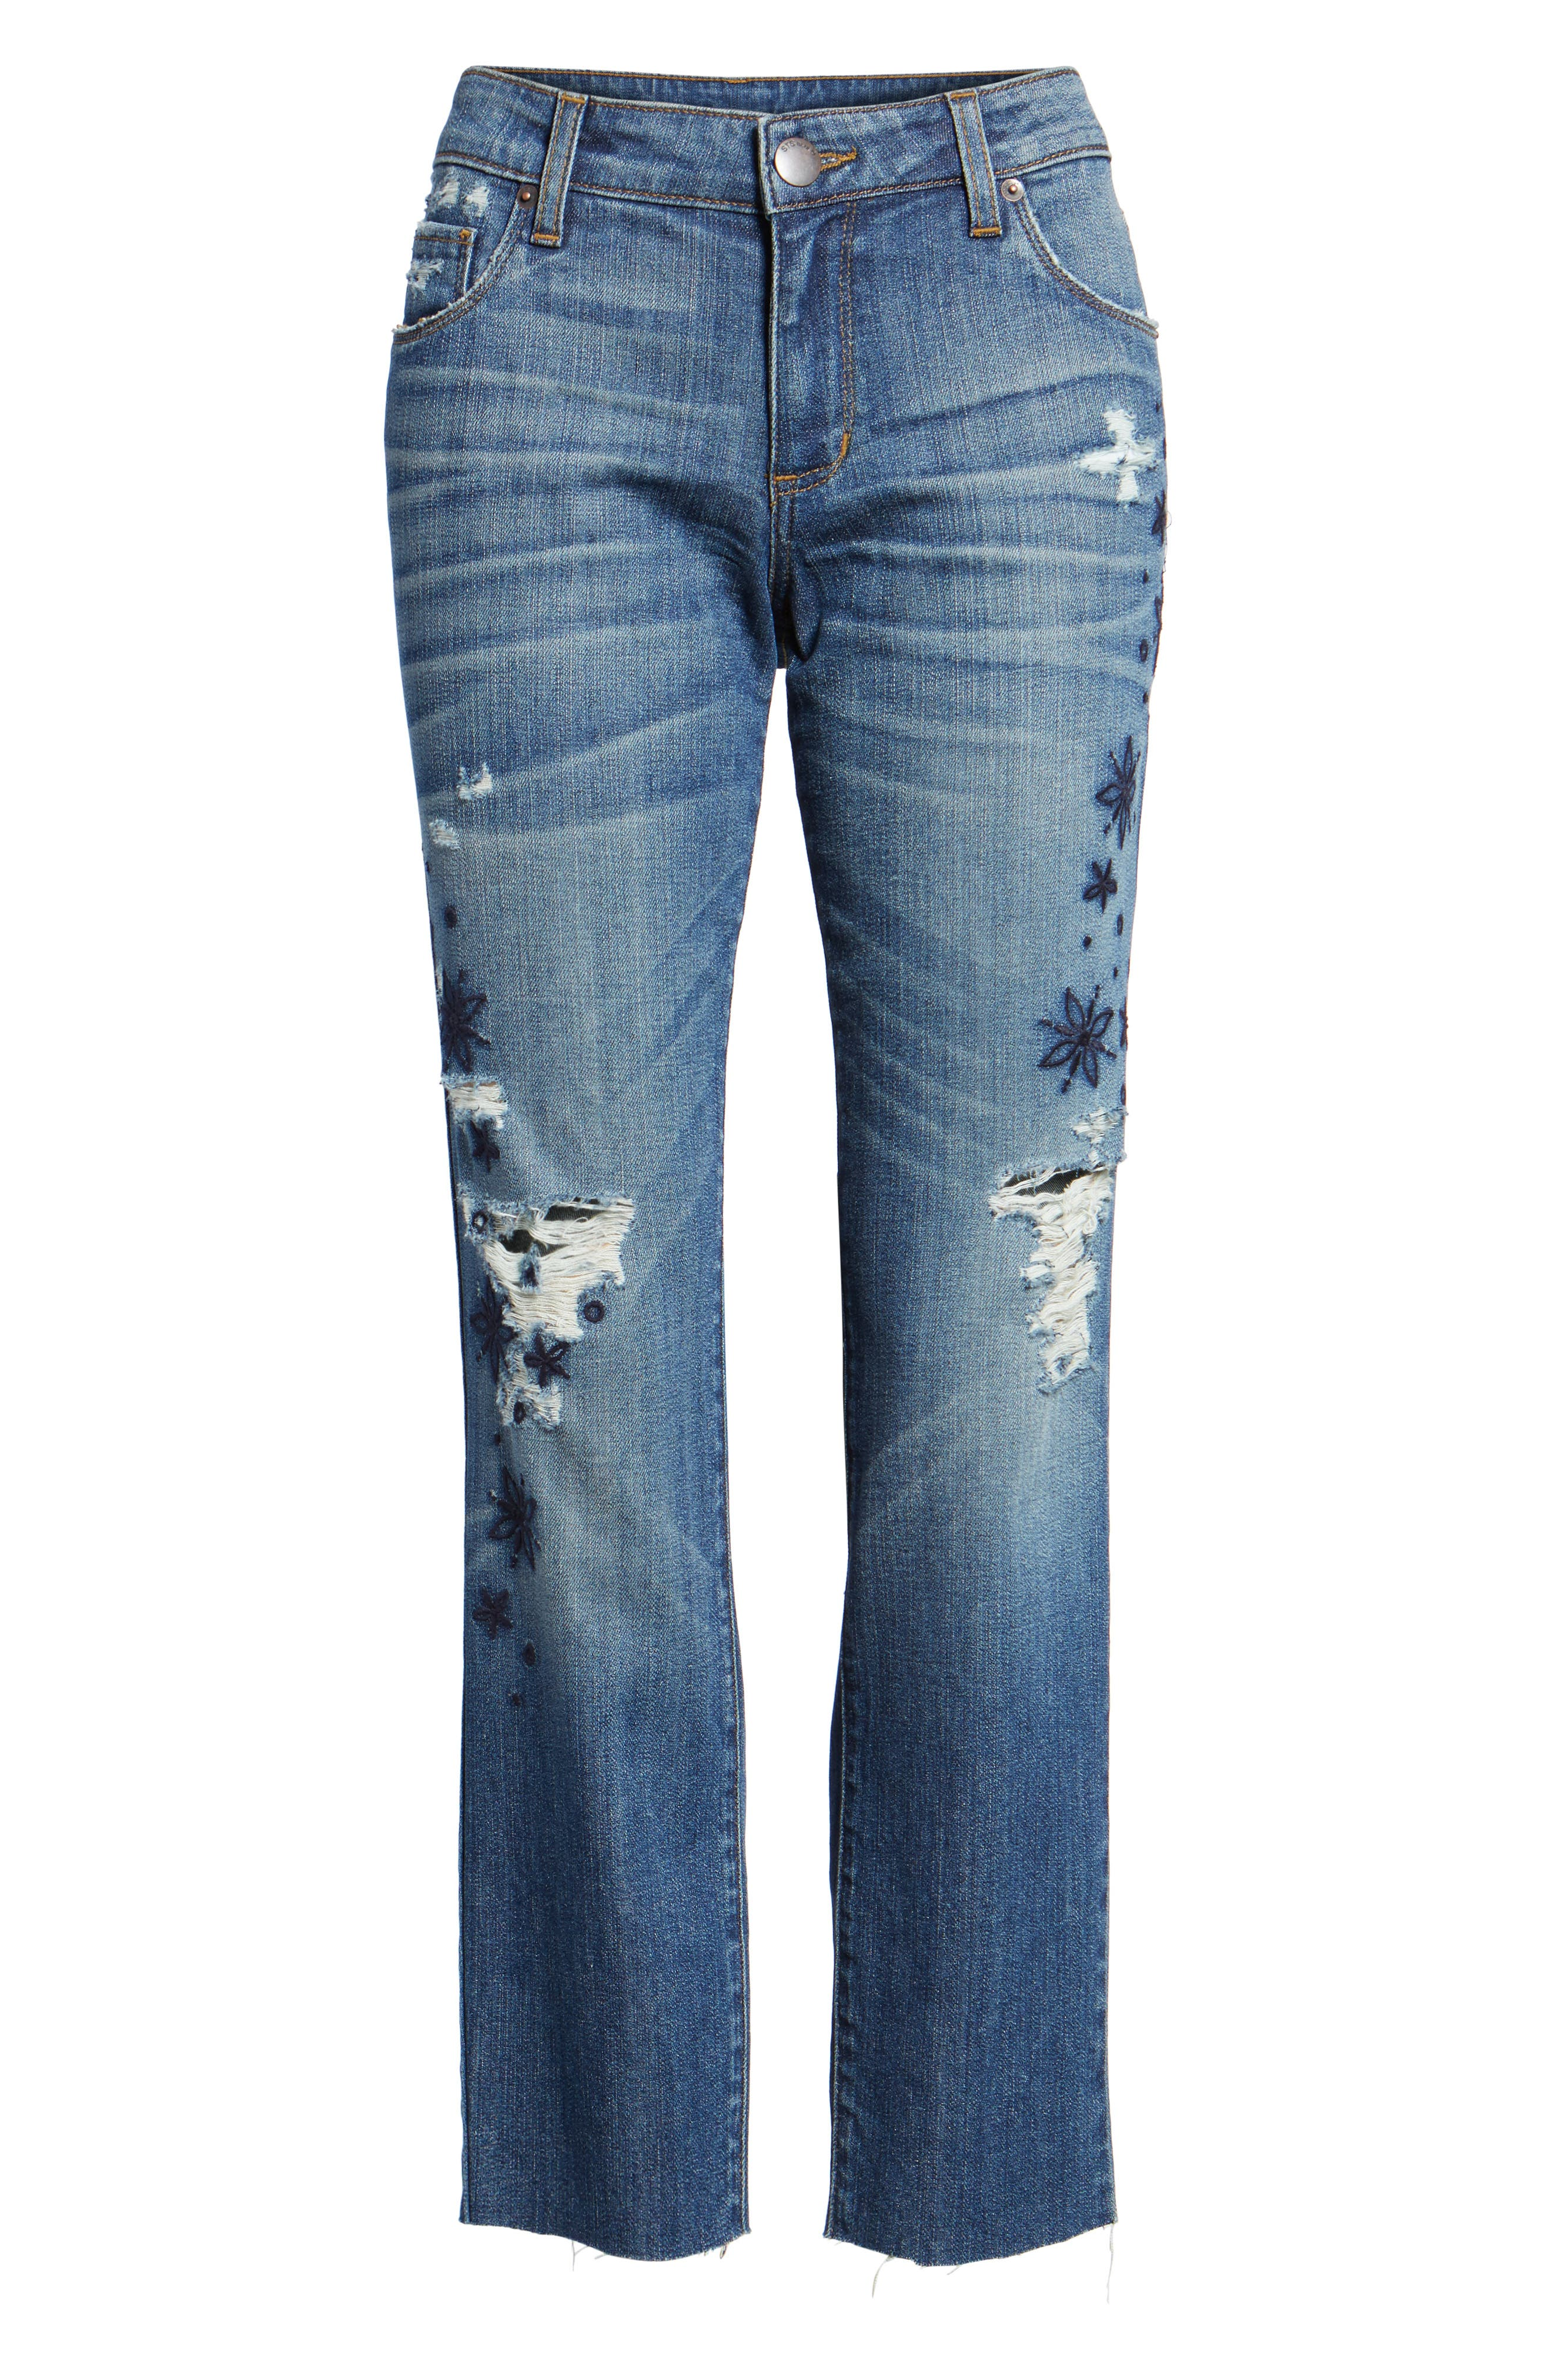 Taylor Ripped Embroidered Straight Leg Jeans,                             Alternate thumbnail 6, color,                             Rosedale